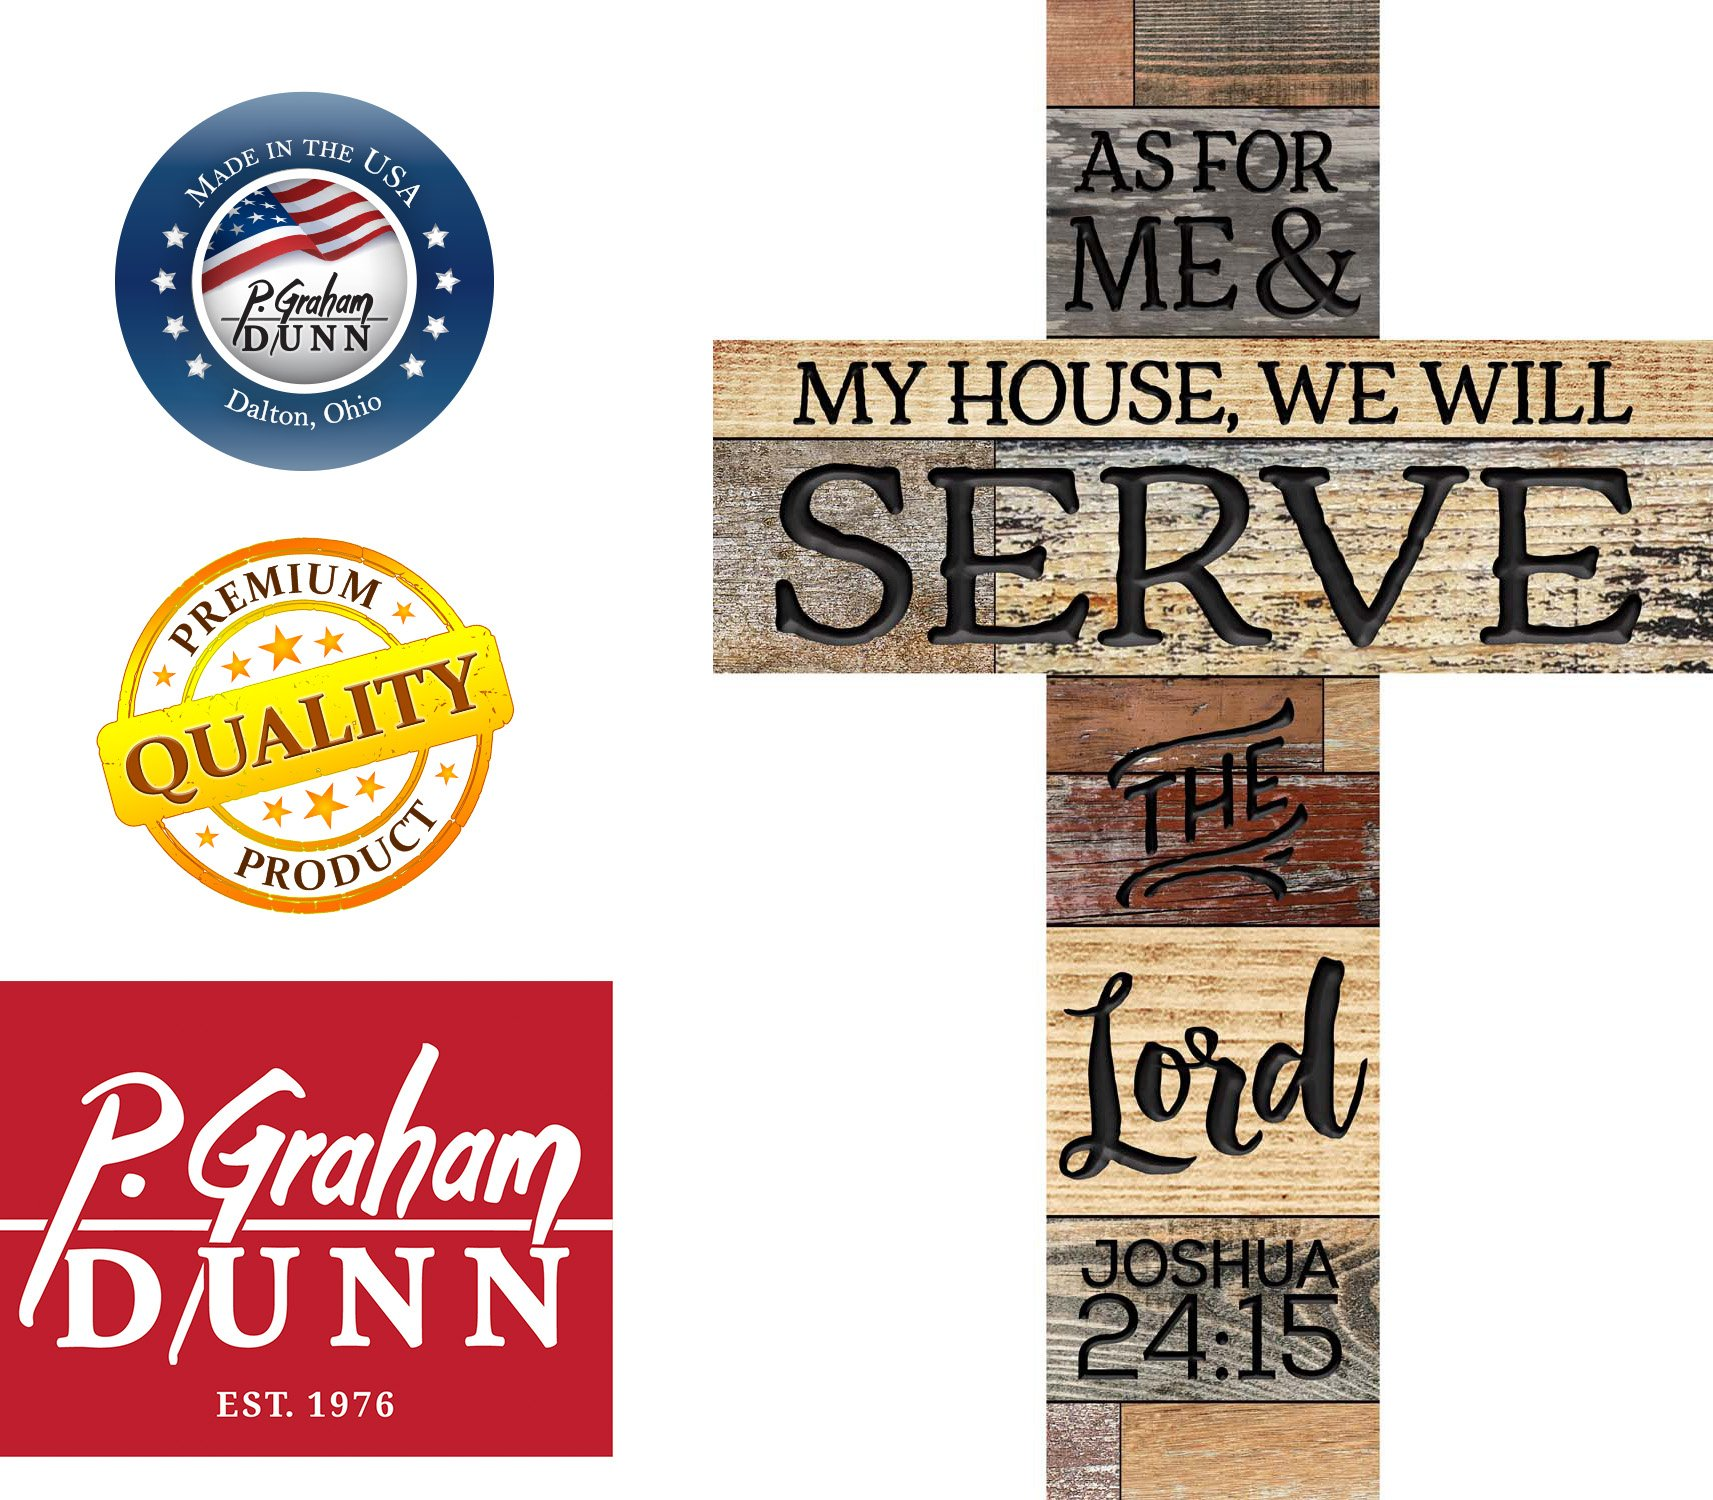 P. Graham Dunn As for Me & My House We Will Serve The Lord 36 x 24 Wood Wall Art Plaque Cross by P. Graham Dunn (Image #2)